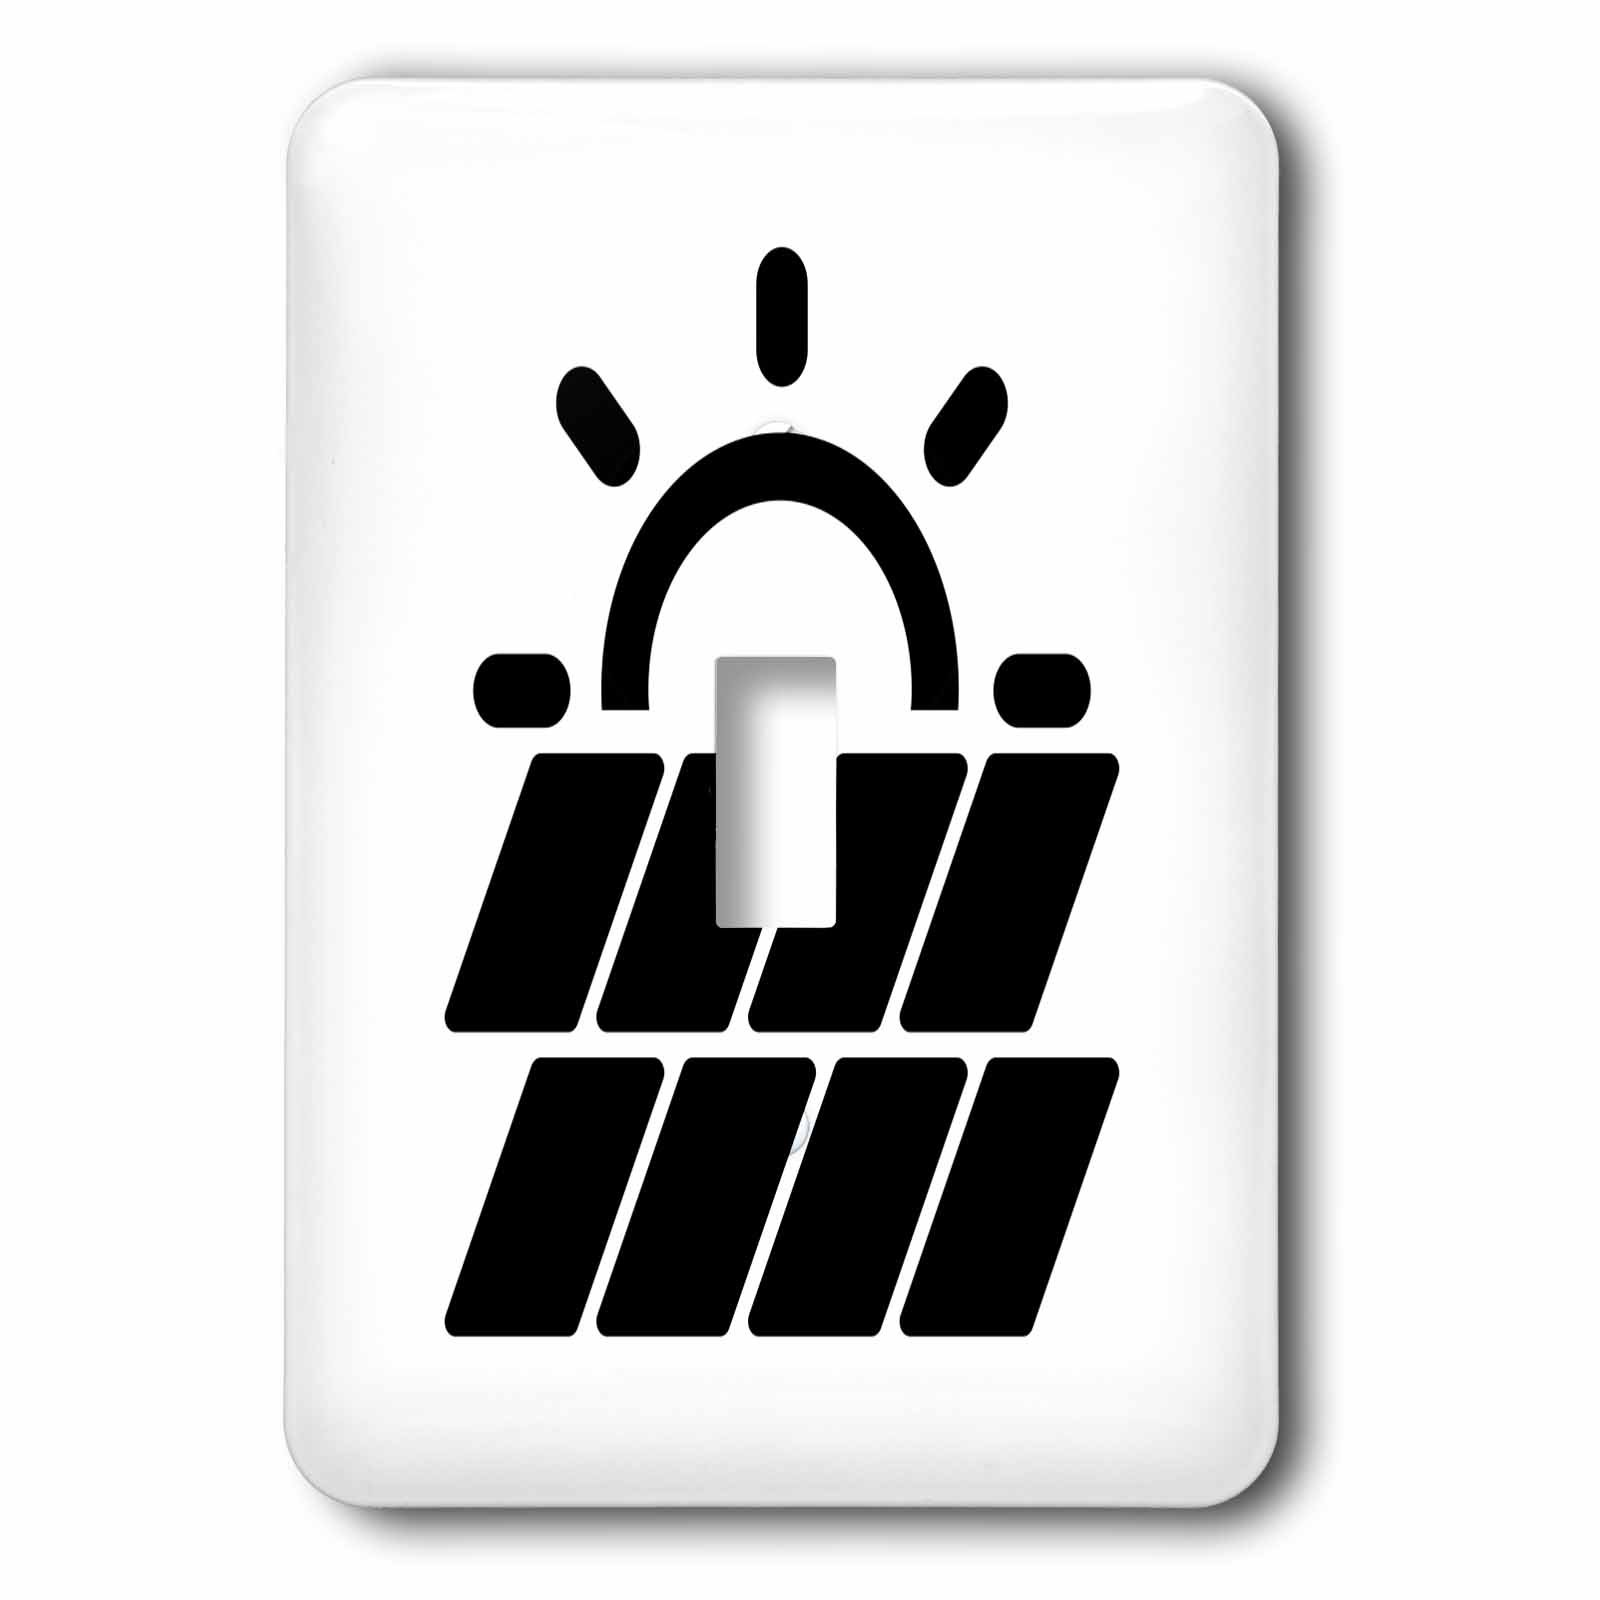 3dRose Carsten Reisinger - Illustrations - Solar Power Symbol Protect the Environment - Light Switch Covers - single toggle switch (lsp_282669_1)